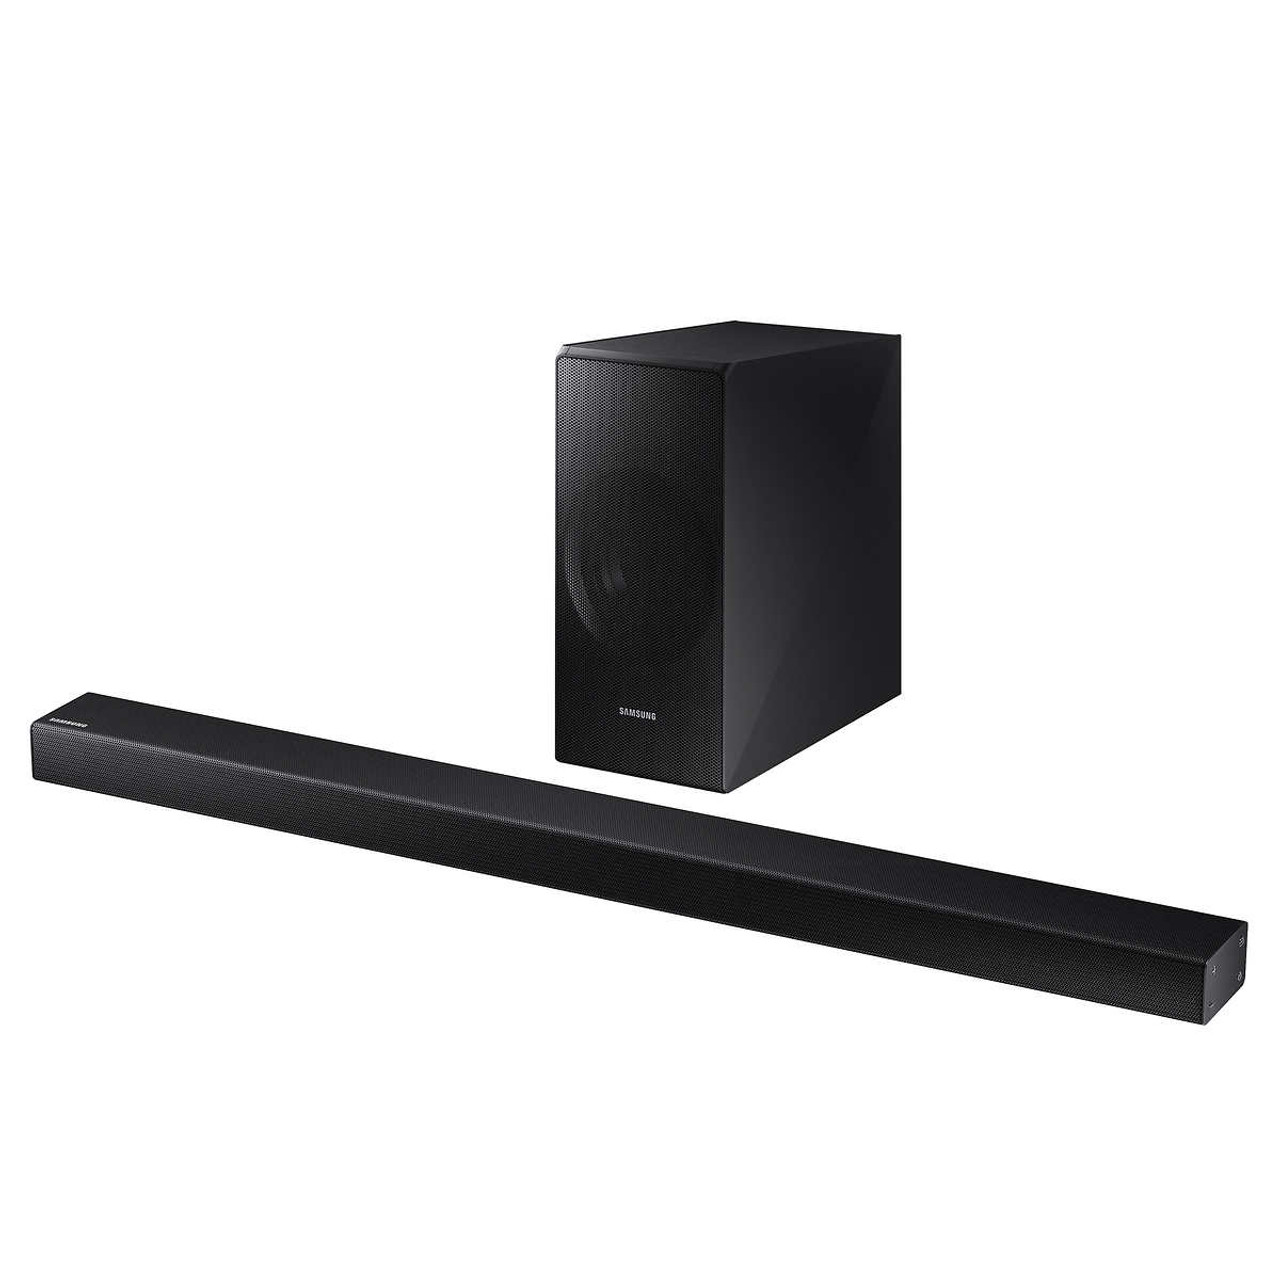 Samsung HW-MM55C/ZAR 340 Watt 3.1 Ch. Soundbar Wireless Subwoofer - Certified Refurbished